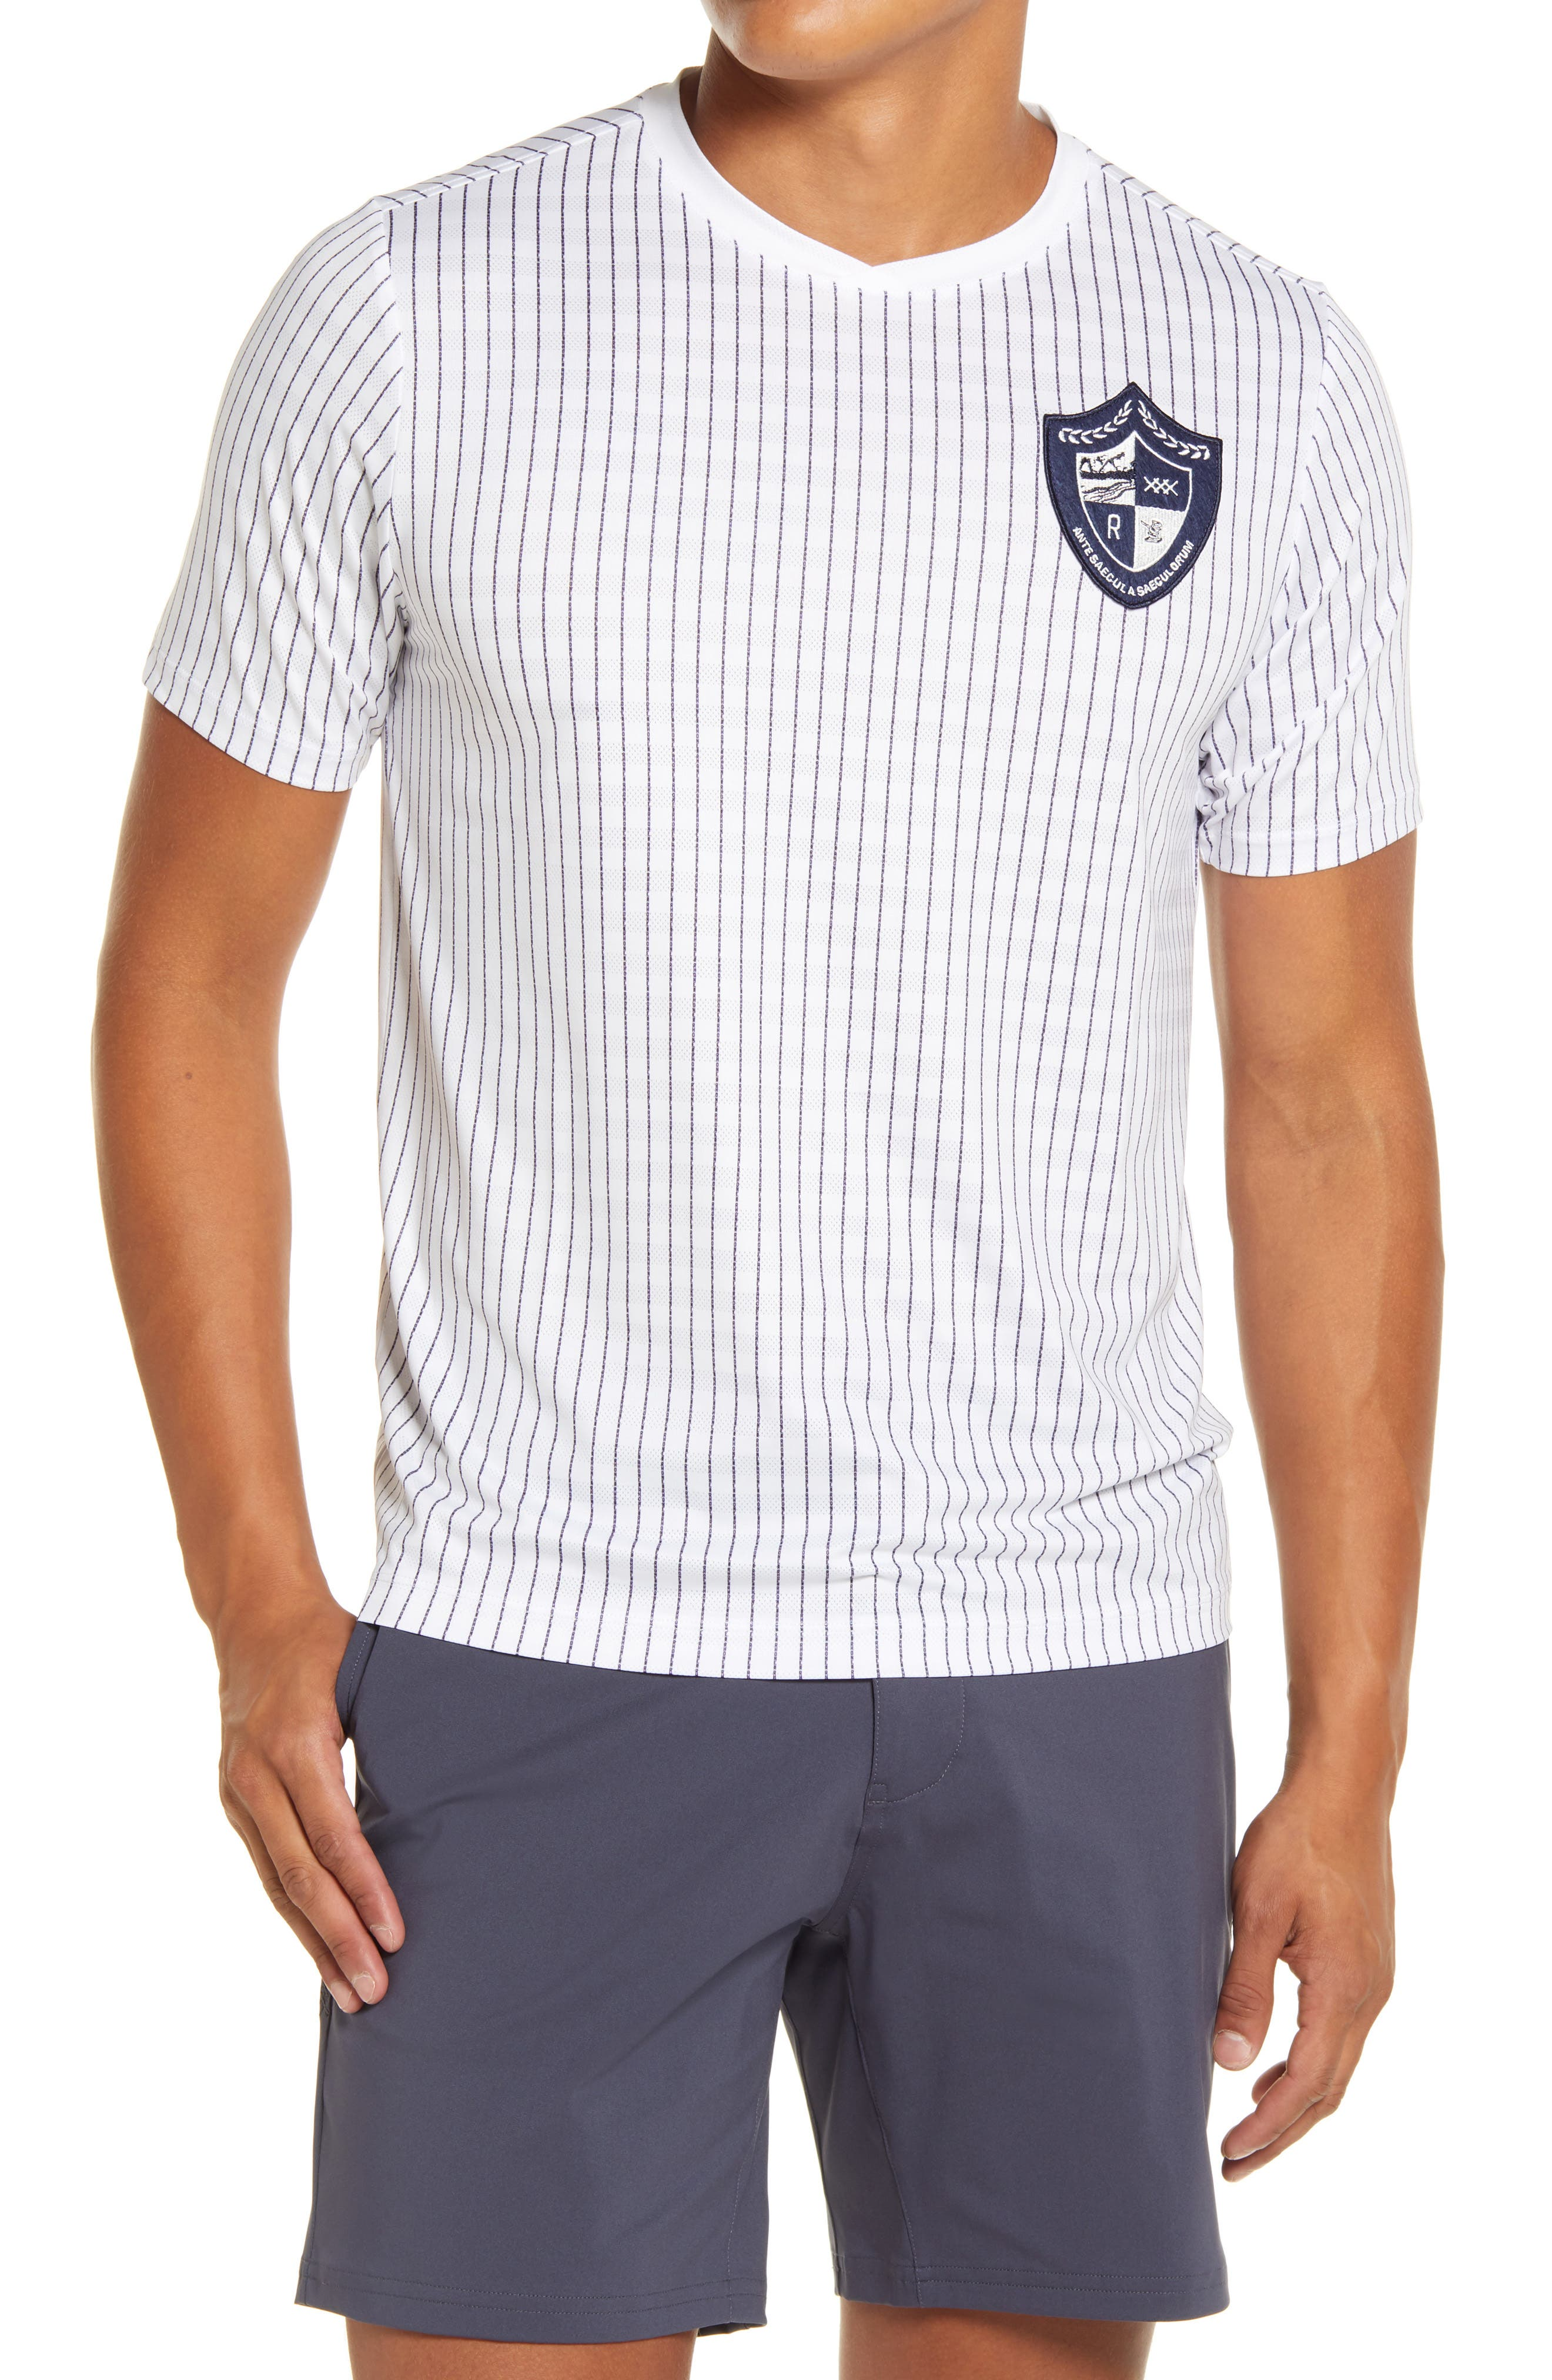 Stretchy, moisture-wicking mesh keeps up at any intensity in a sporty pinstripe T-shirt that dries quickly and resists odors to keep you fresh and comfortable. Style Name: Rhone Swift Academy Pinstripe Performance Mesh T-Shirt. Style Number: 6095342. Available in stores.